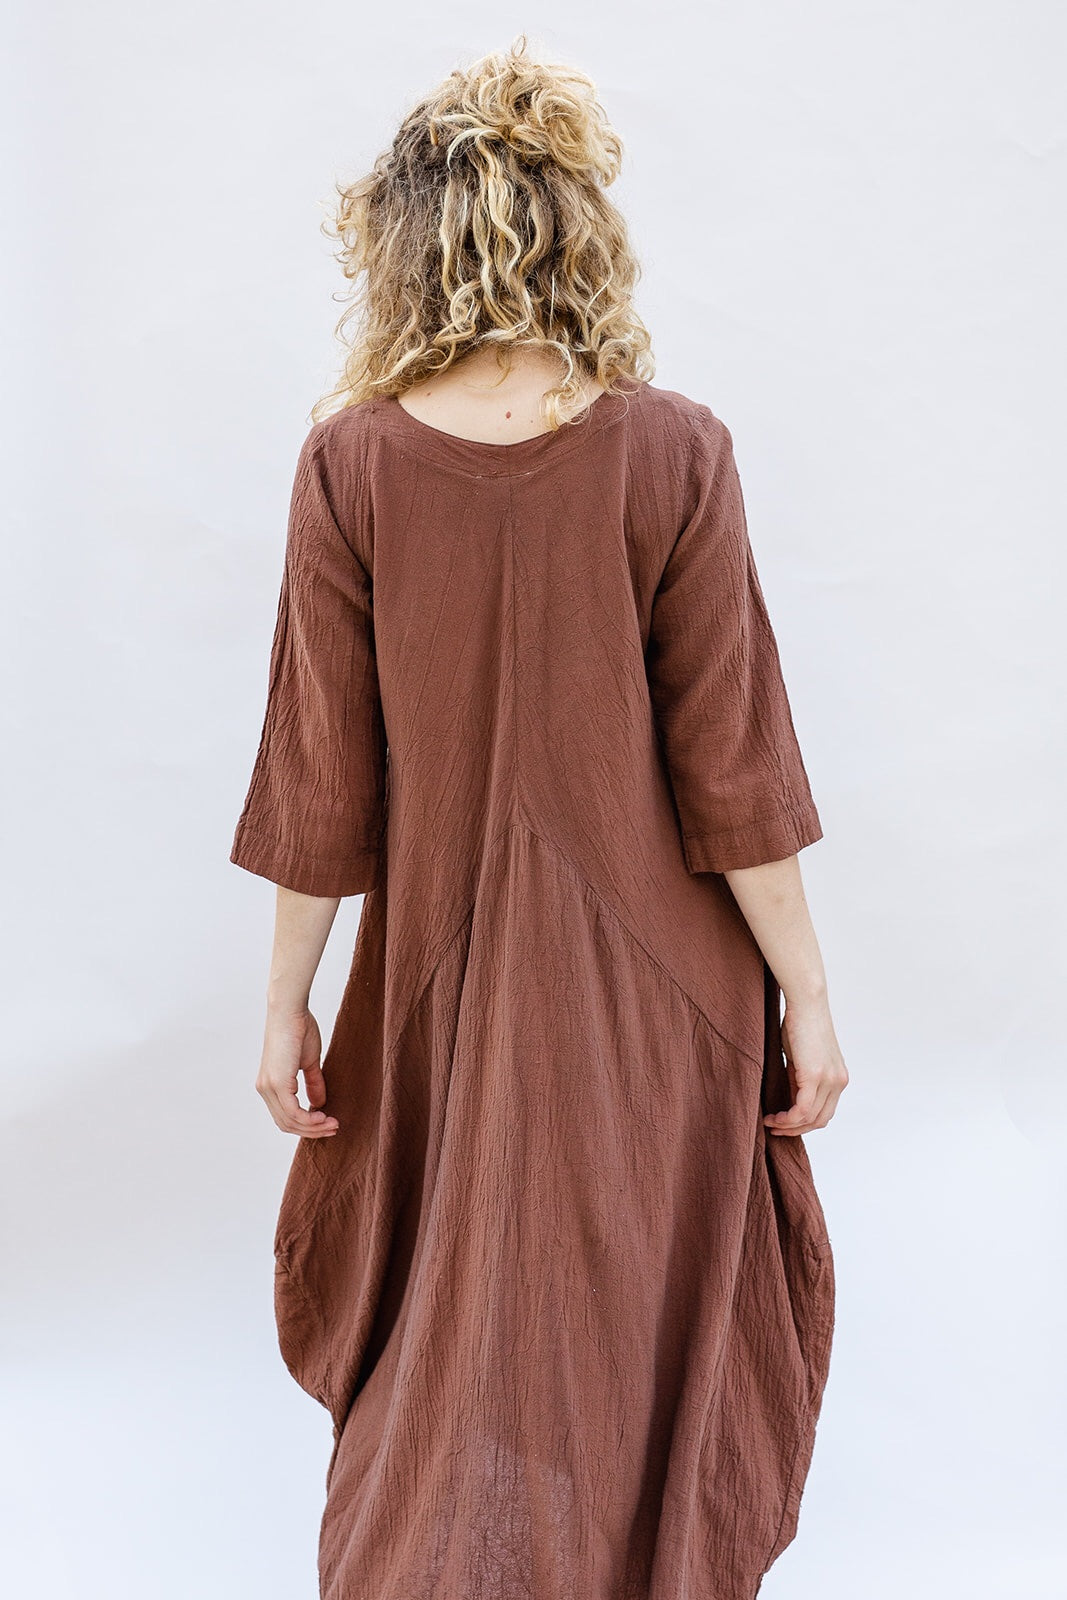 Llano Dress in Sable